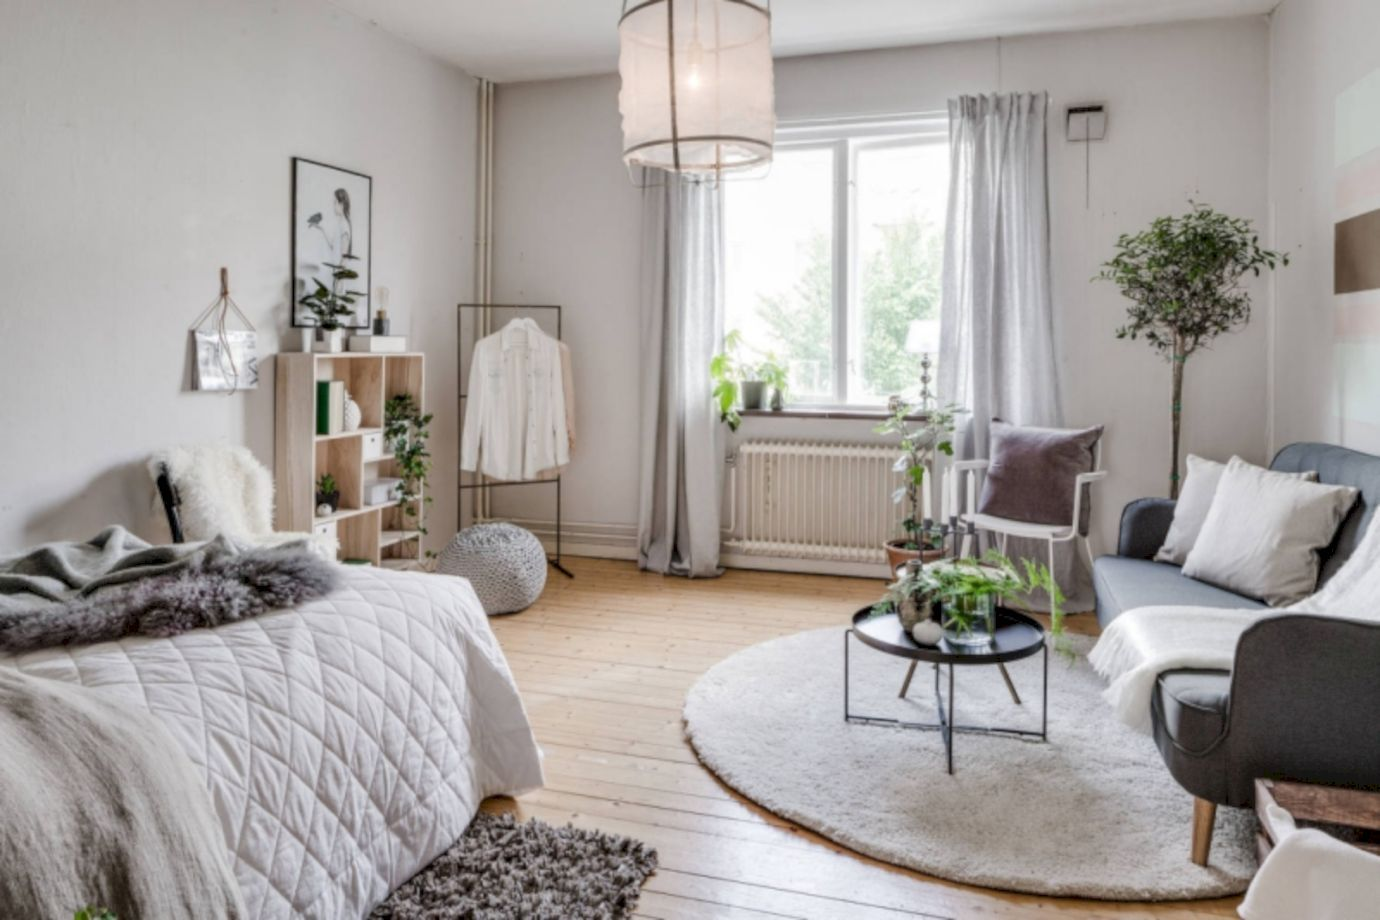 50 Cozy Minimalist Studio Apartment Decor Ideas Apartment